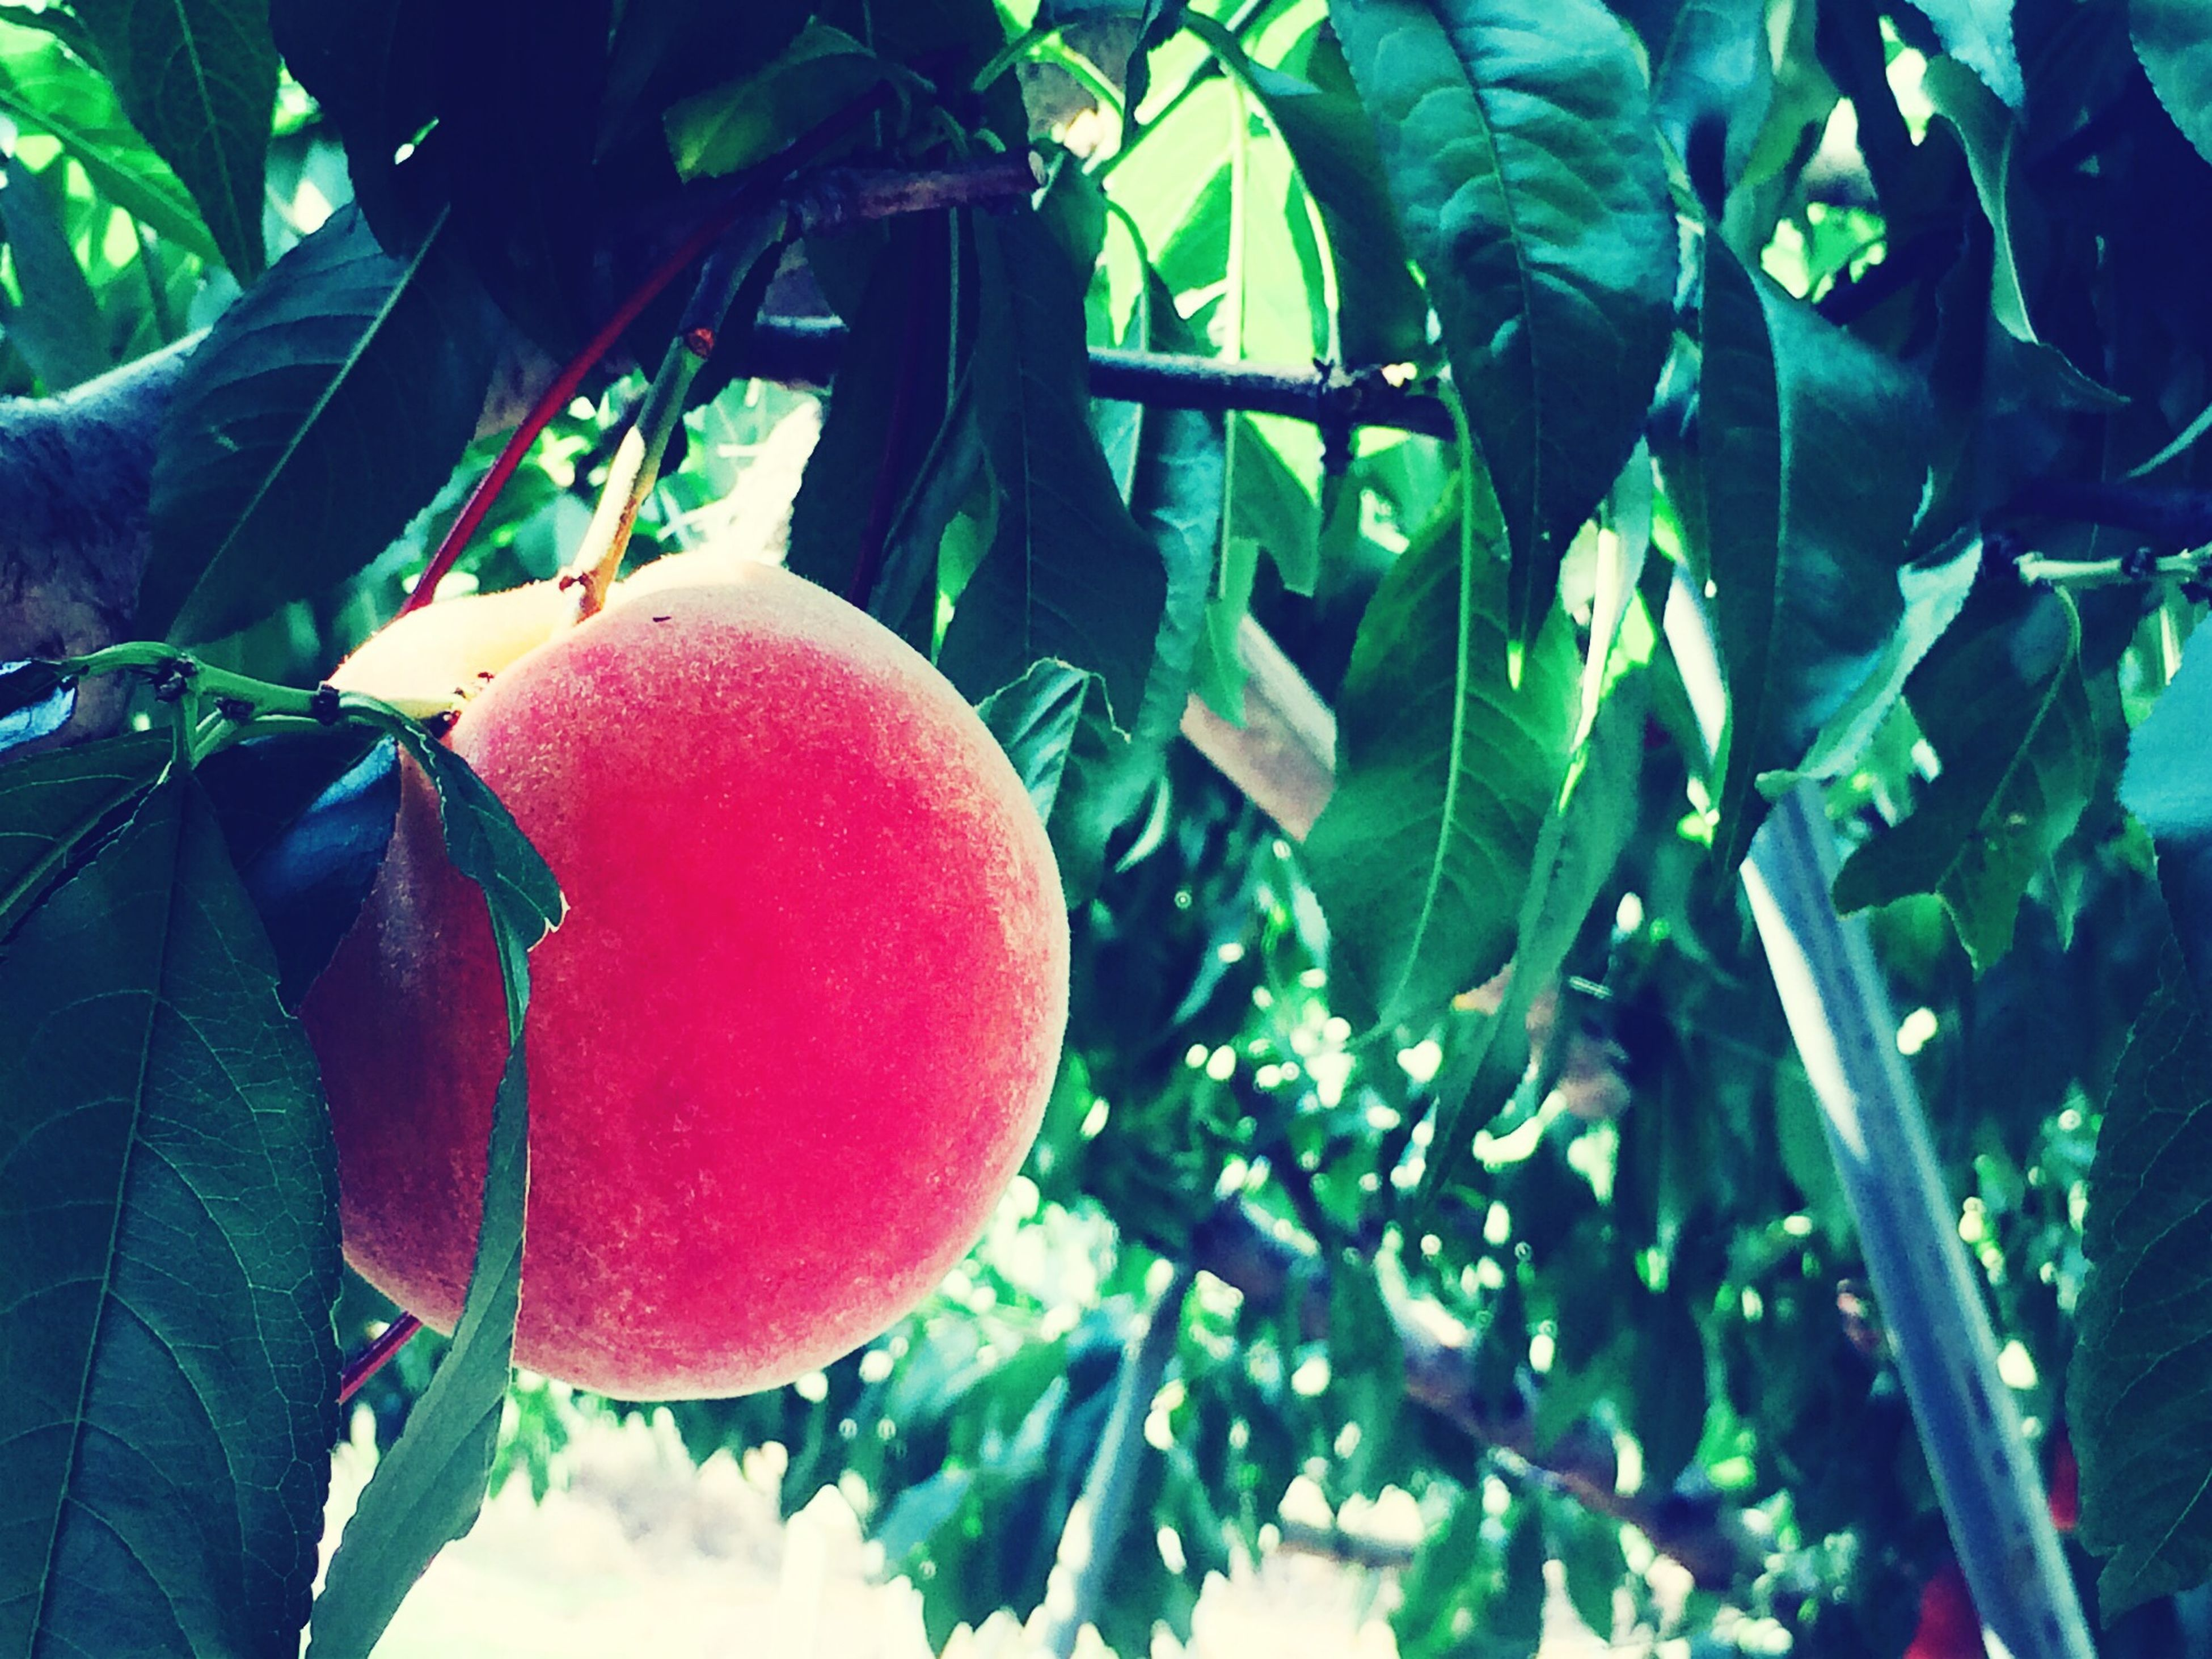 food and drink, freshness, leaf, fruit, food, growth, healthy eating, tree, red, close-up, hanging, branch, green color, day, outdoors, focus on foreground, plant, sunlight, ripe, no people